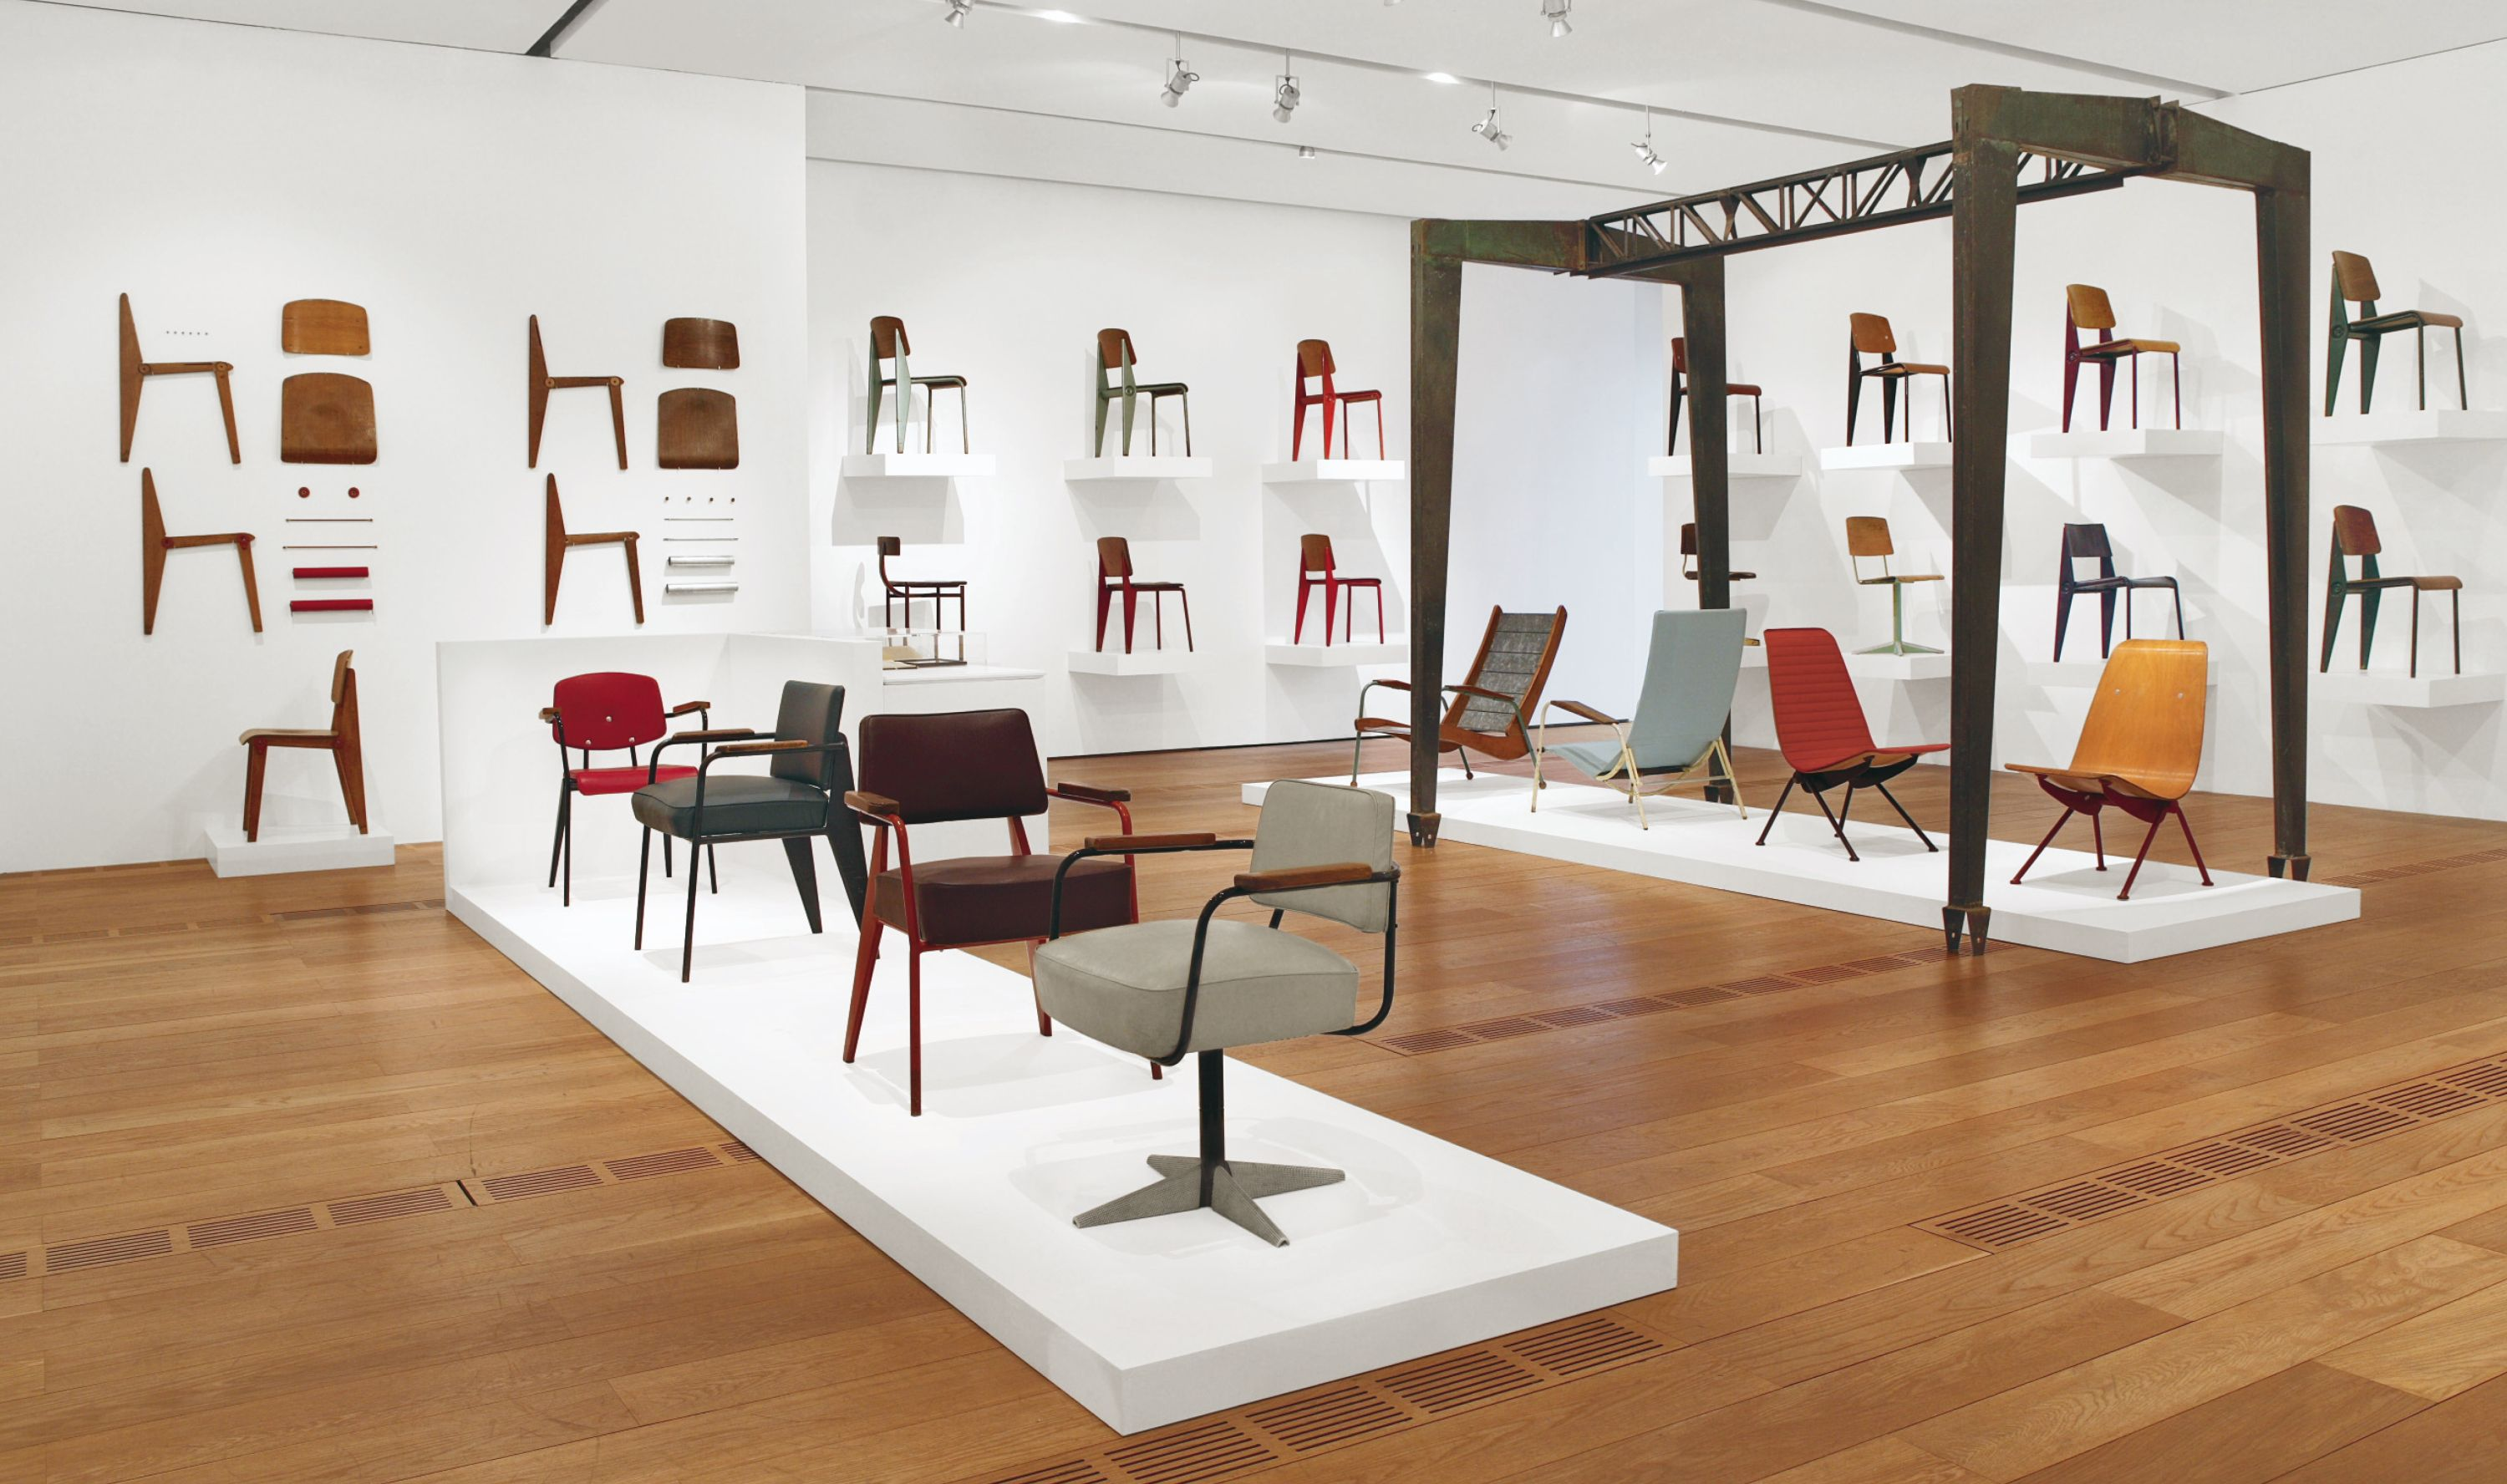 Perfect The Pinacoteca Giovanni E Marella Agnelli Presents A Passion For Jean  Prouvé, An Exhibition Devoted To The Furniture And Architecture By The  French Designer ...